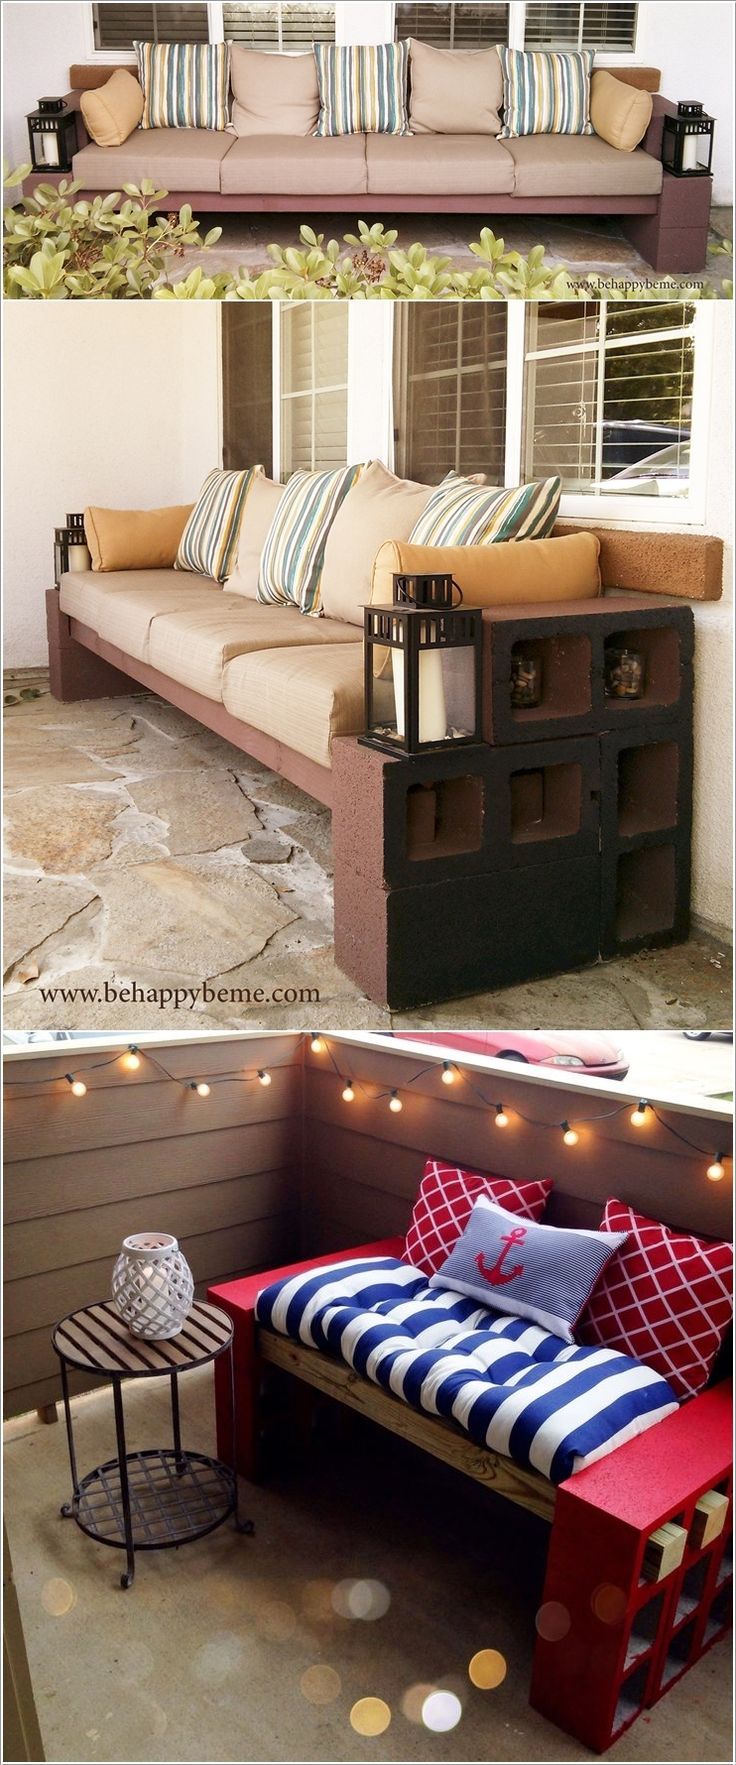 10 wonderful and cheap diy idea for your garden 7 patio benchdiy benchdiy patiocinder block